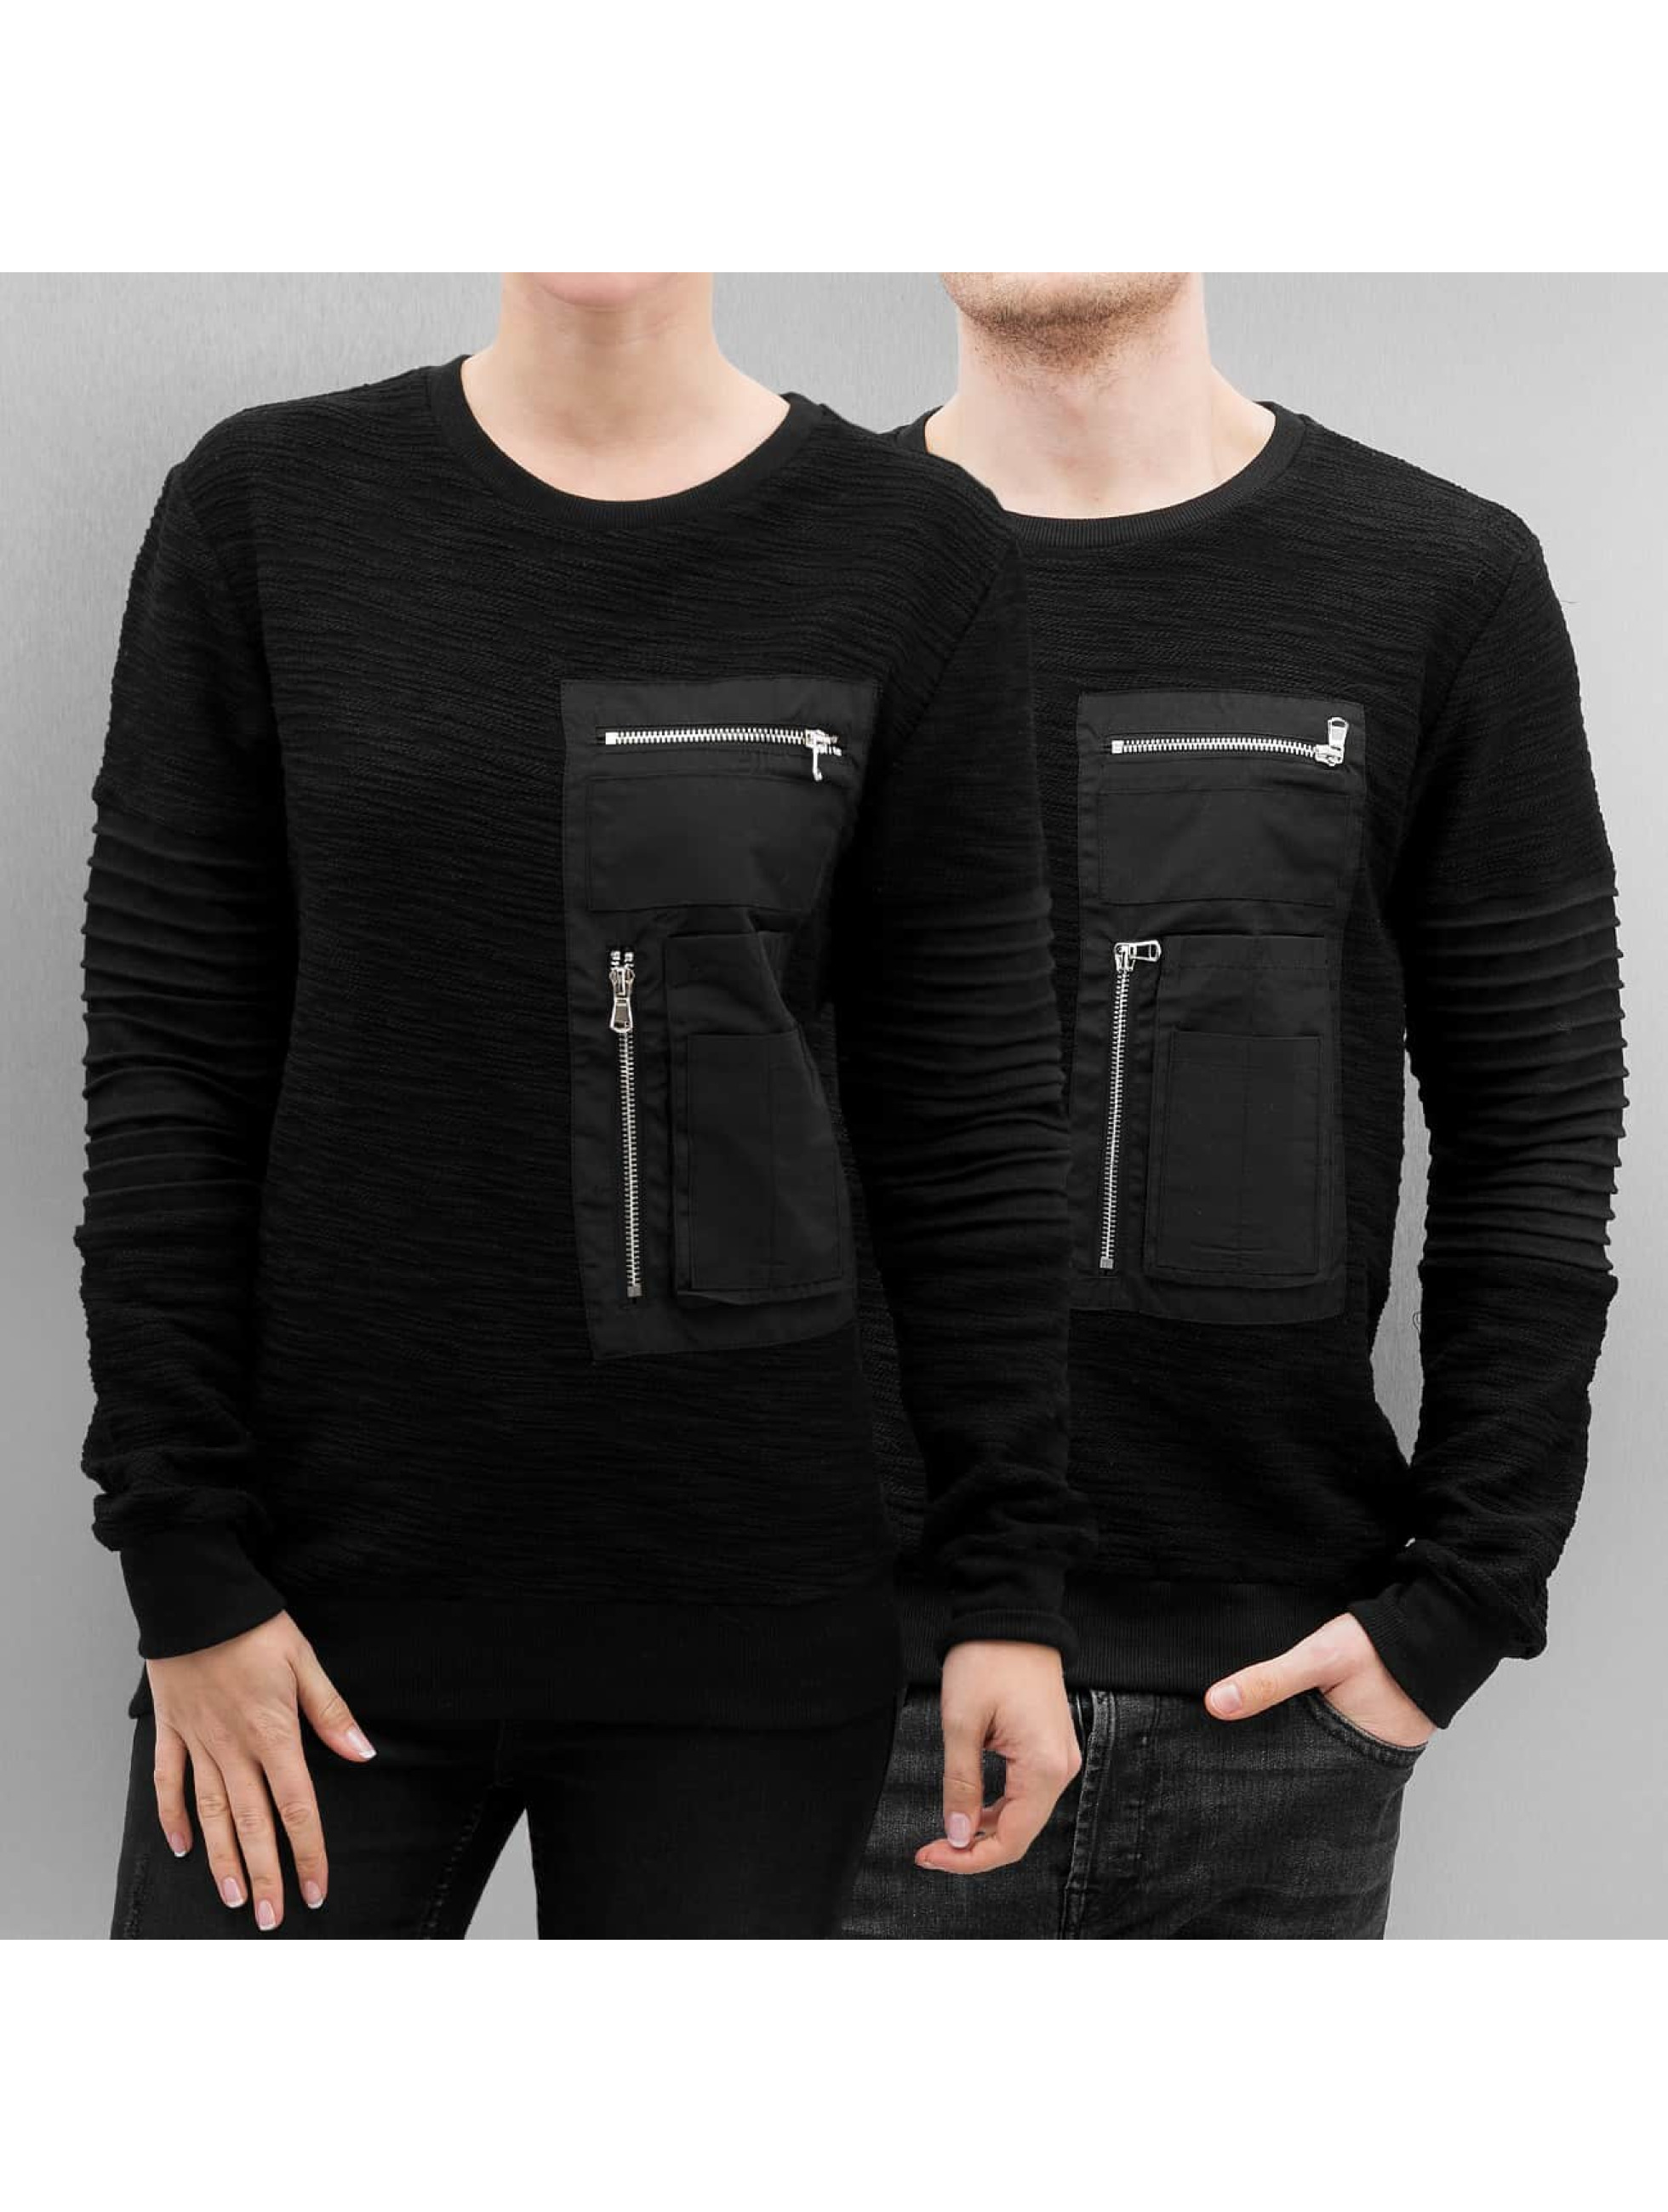 Paris Premium Jumper Pocket black